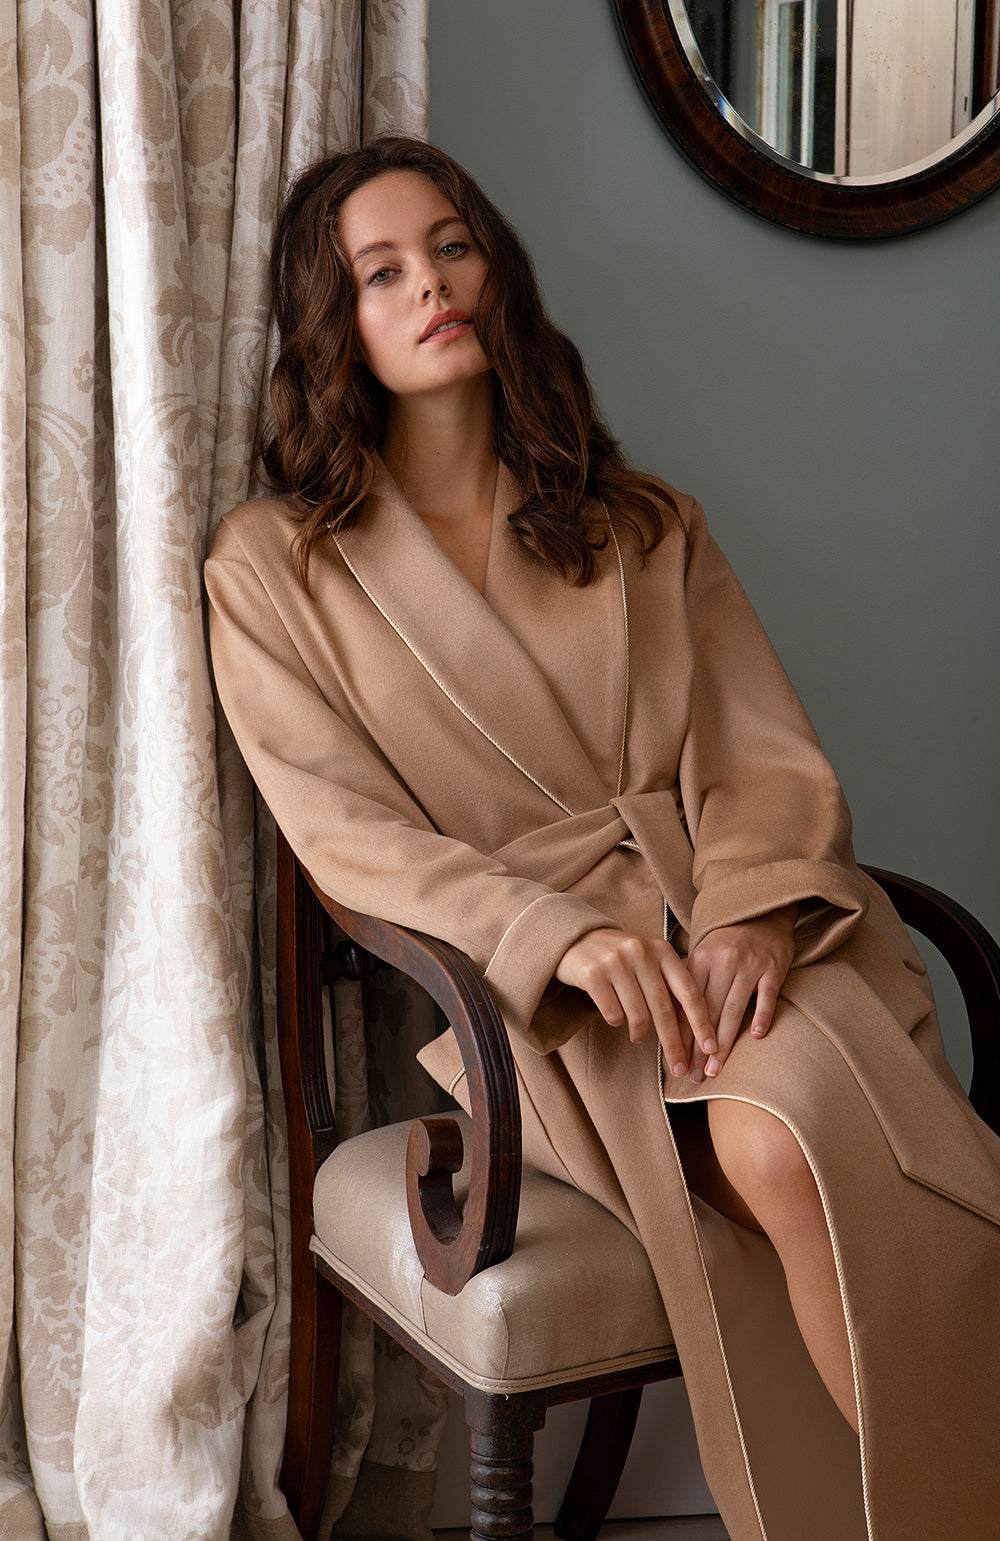 Silk-Lined Cashmere Robe (call) - Camel